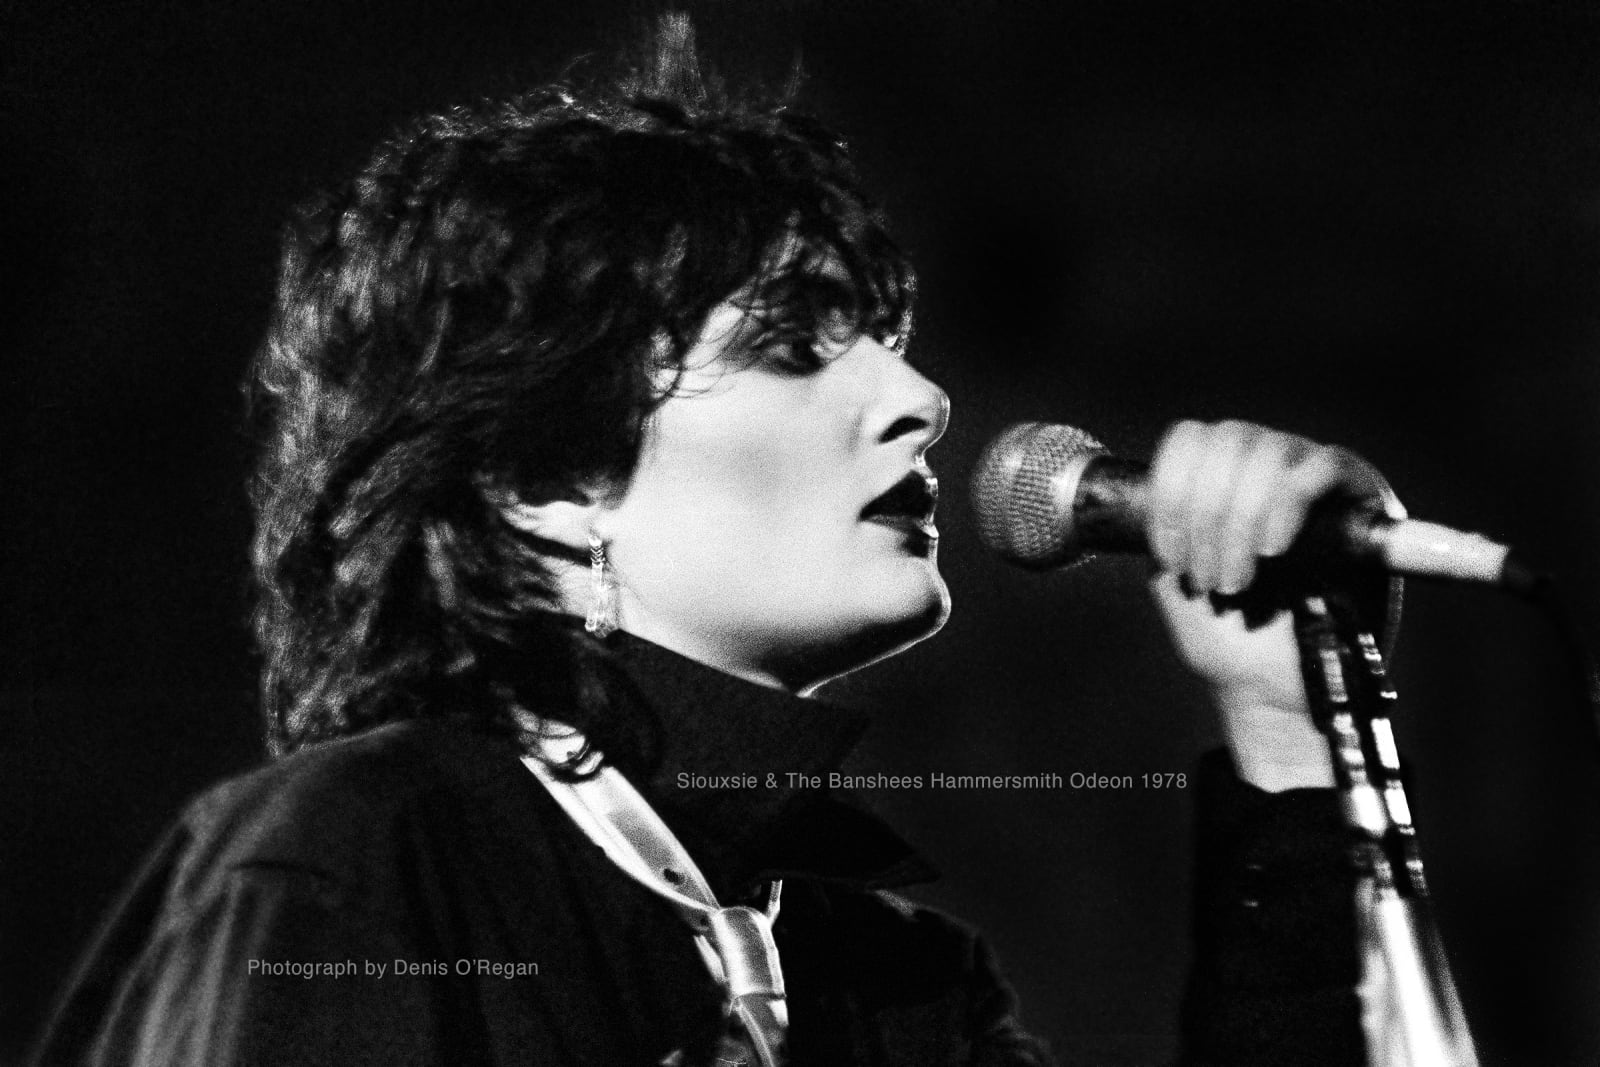 Siouxsie & The Banshees, Siouxsie Sioux Hammersmith, 1978